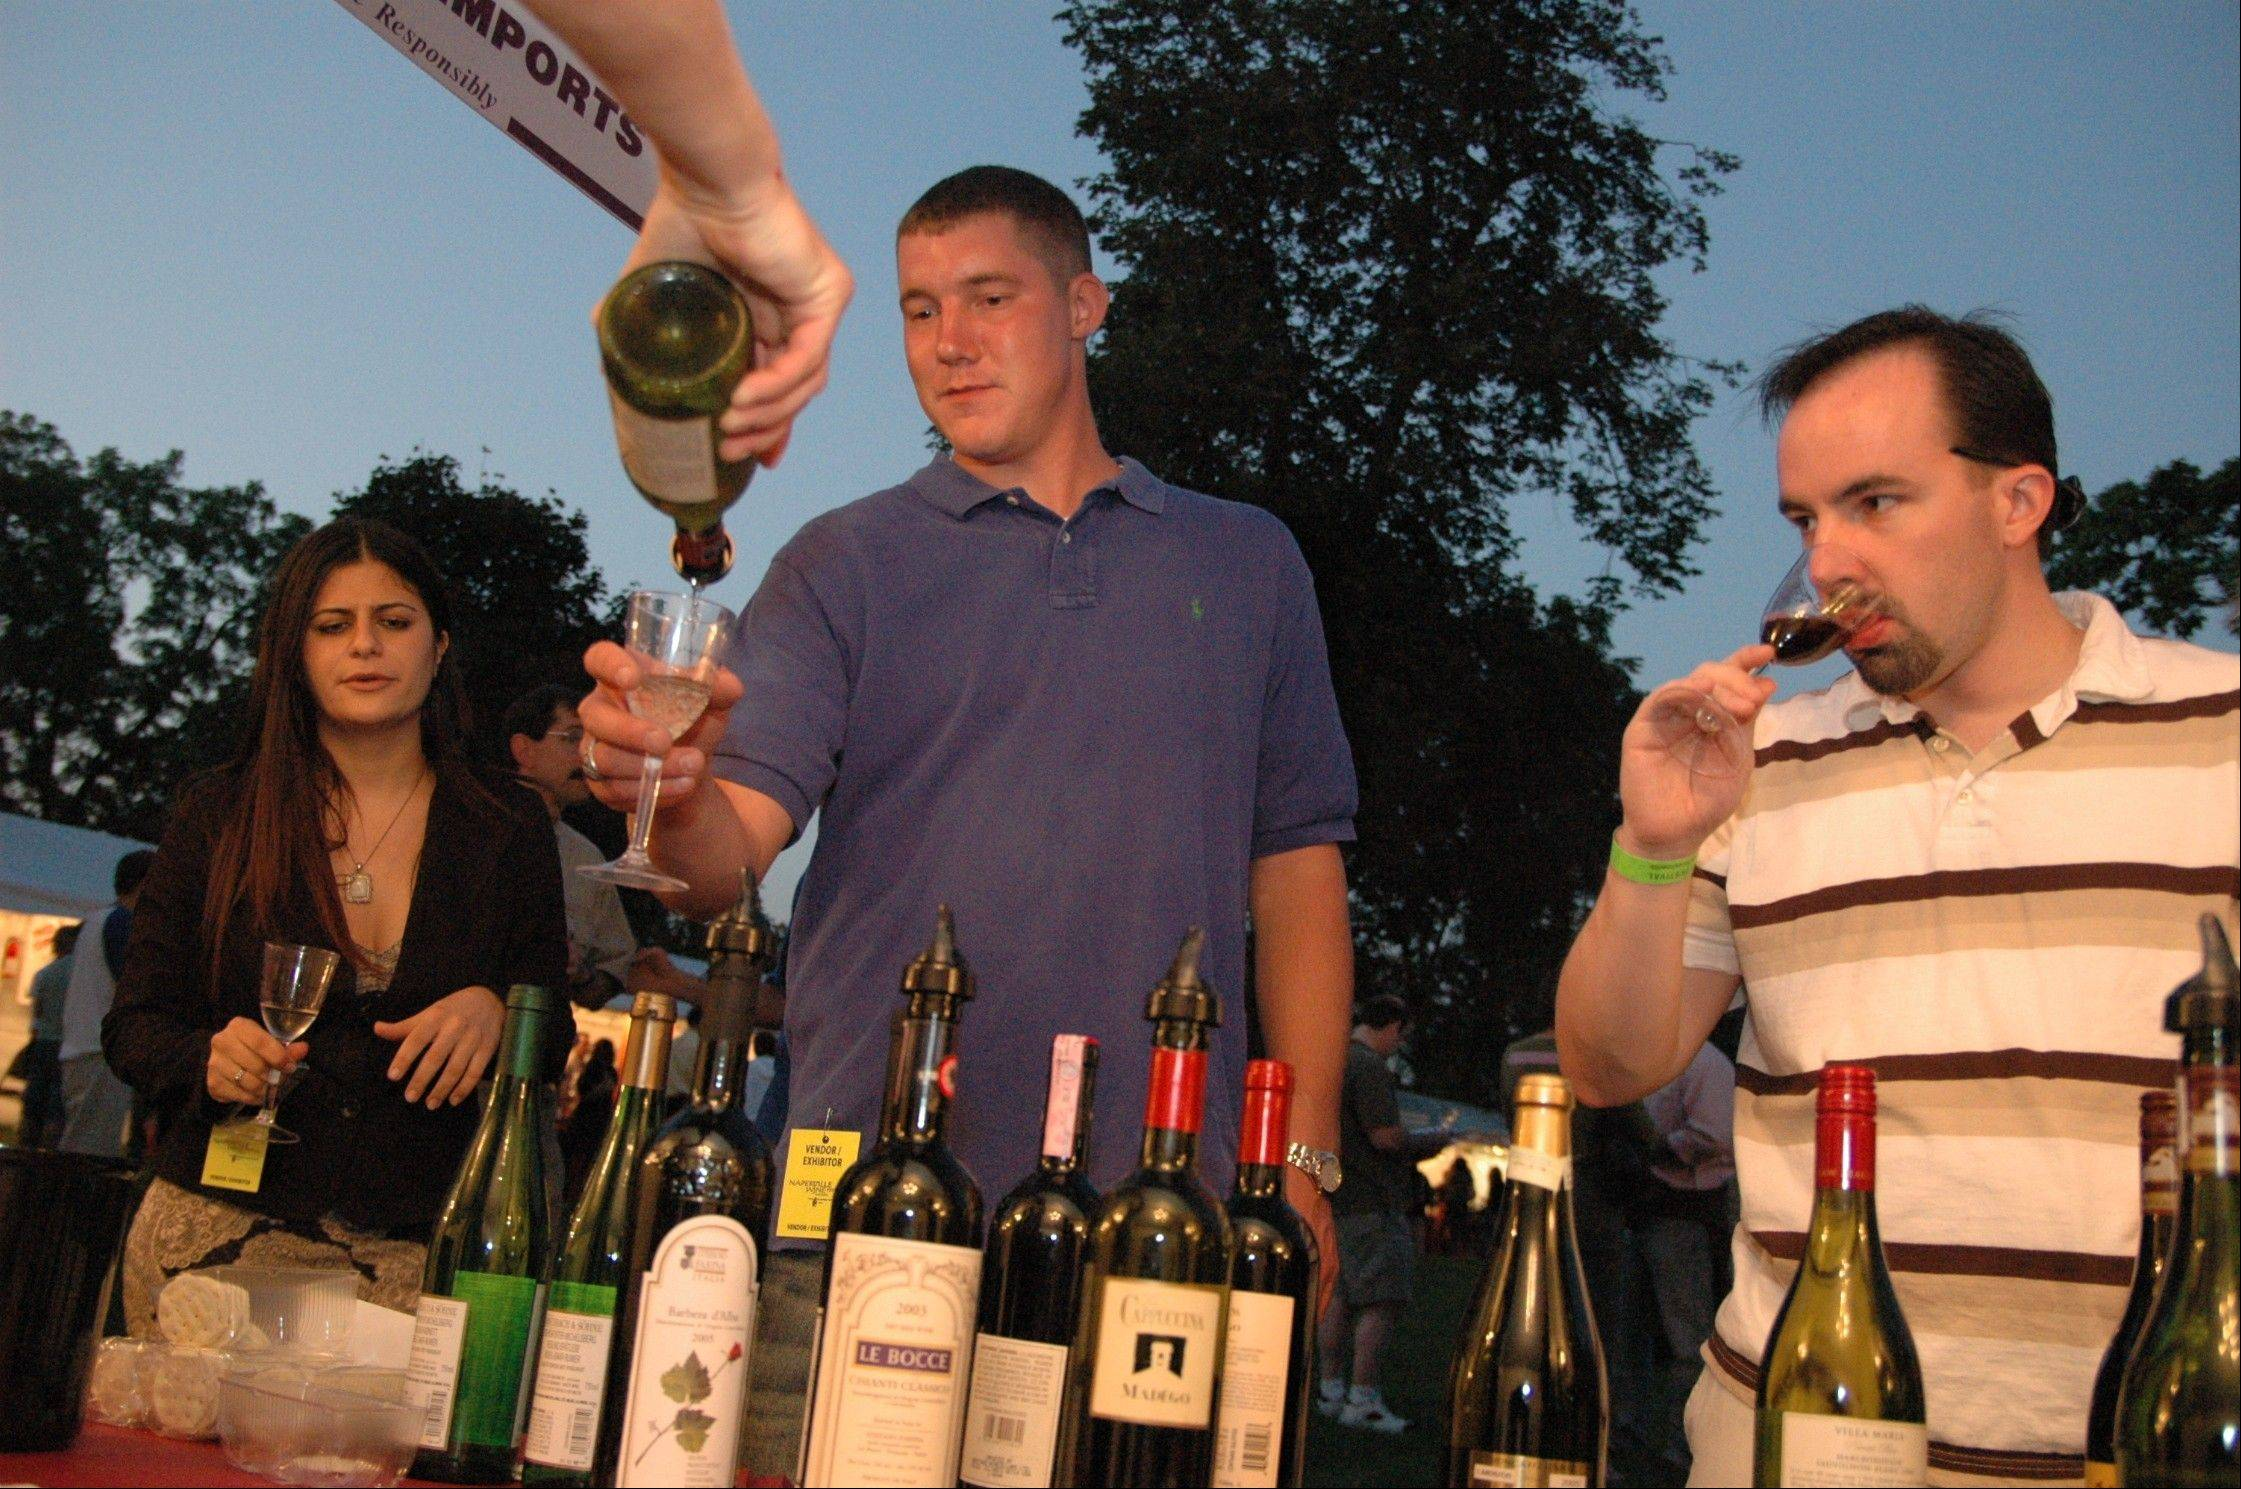 This year the annual Naperville Wine Festival is moving to a new location at the CityGate Centre in Naperville.